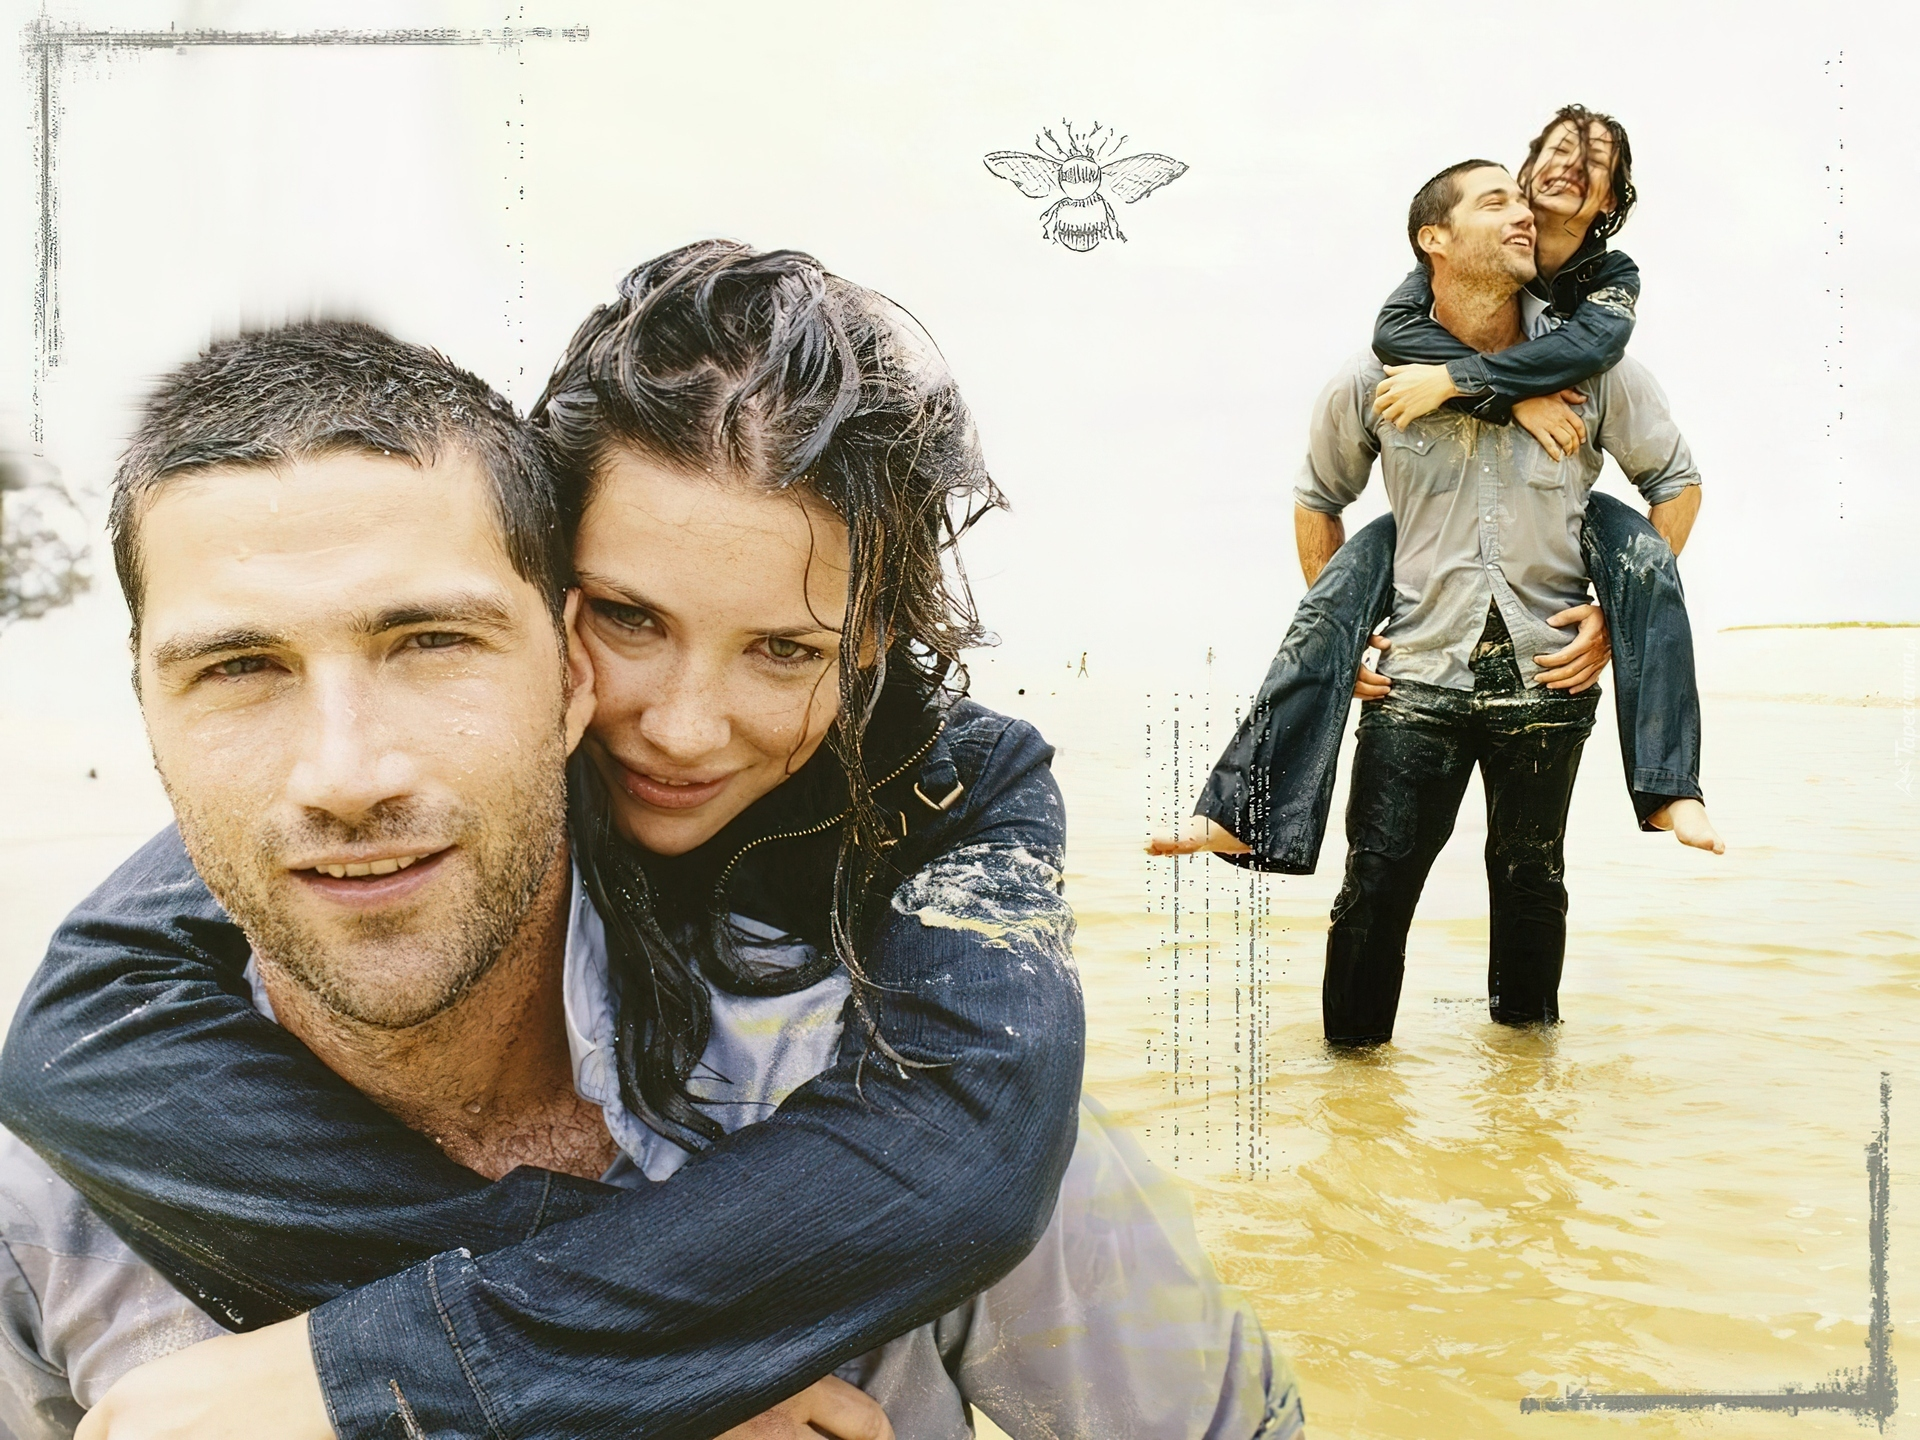 Filmy Lost, Evangeline Lilly, Matthew Fox, mokrzy